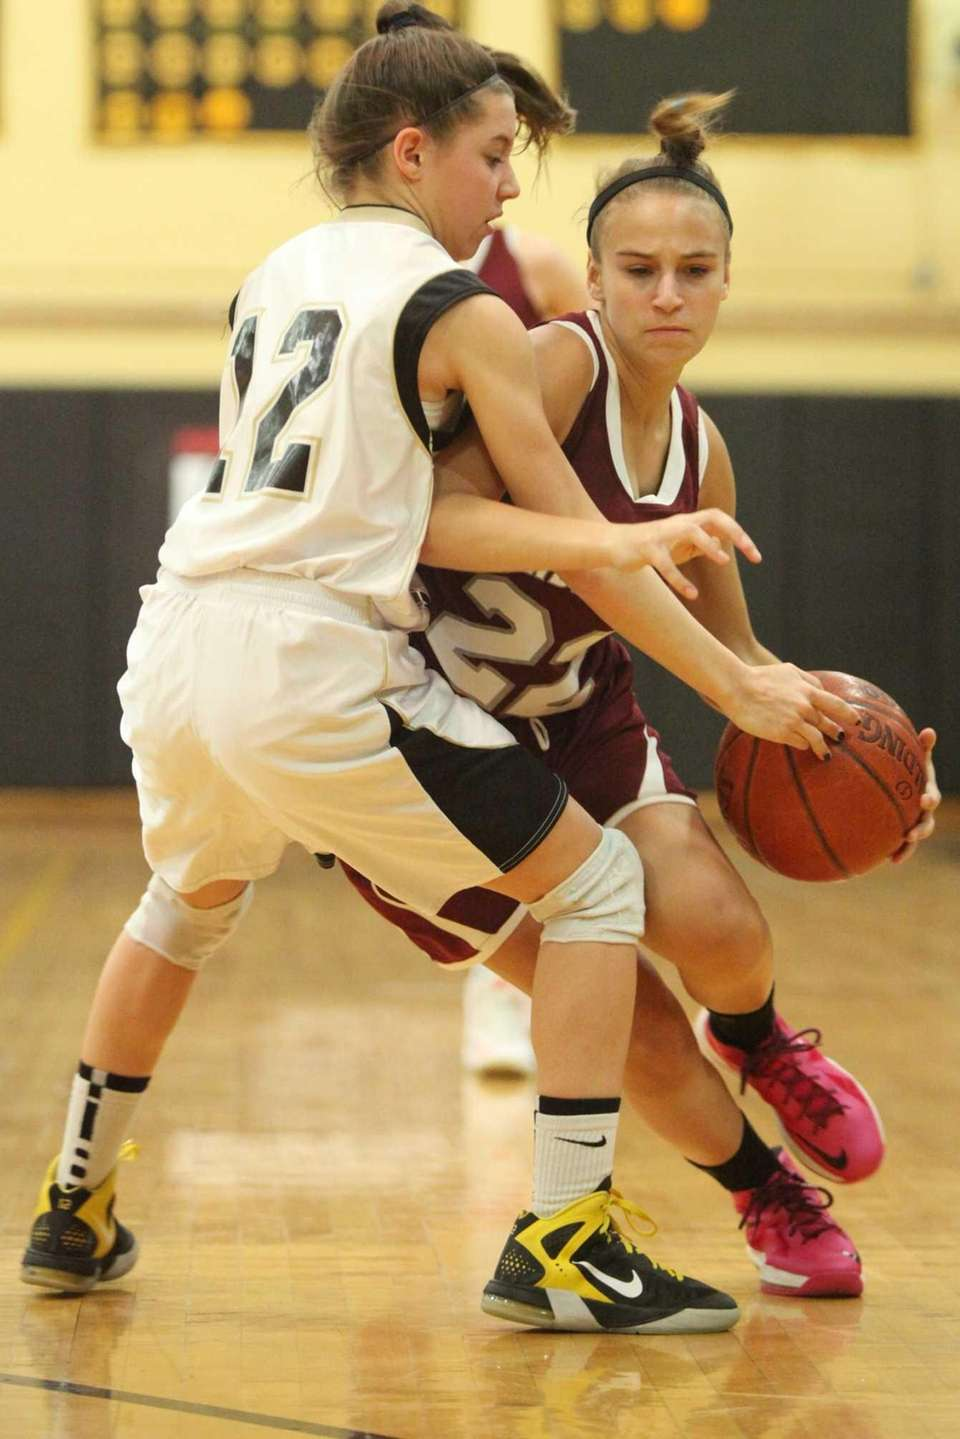 Garden City's Michaela Bruno is guarded by Wantagh's